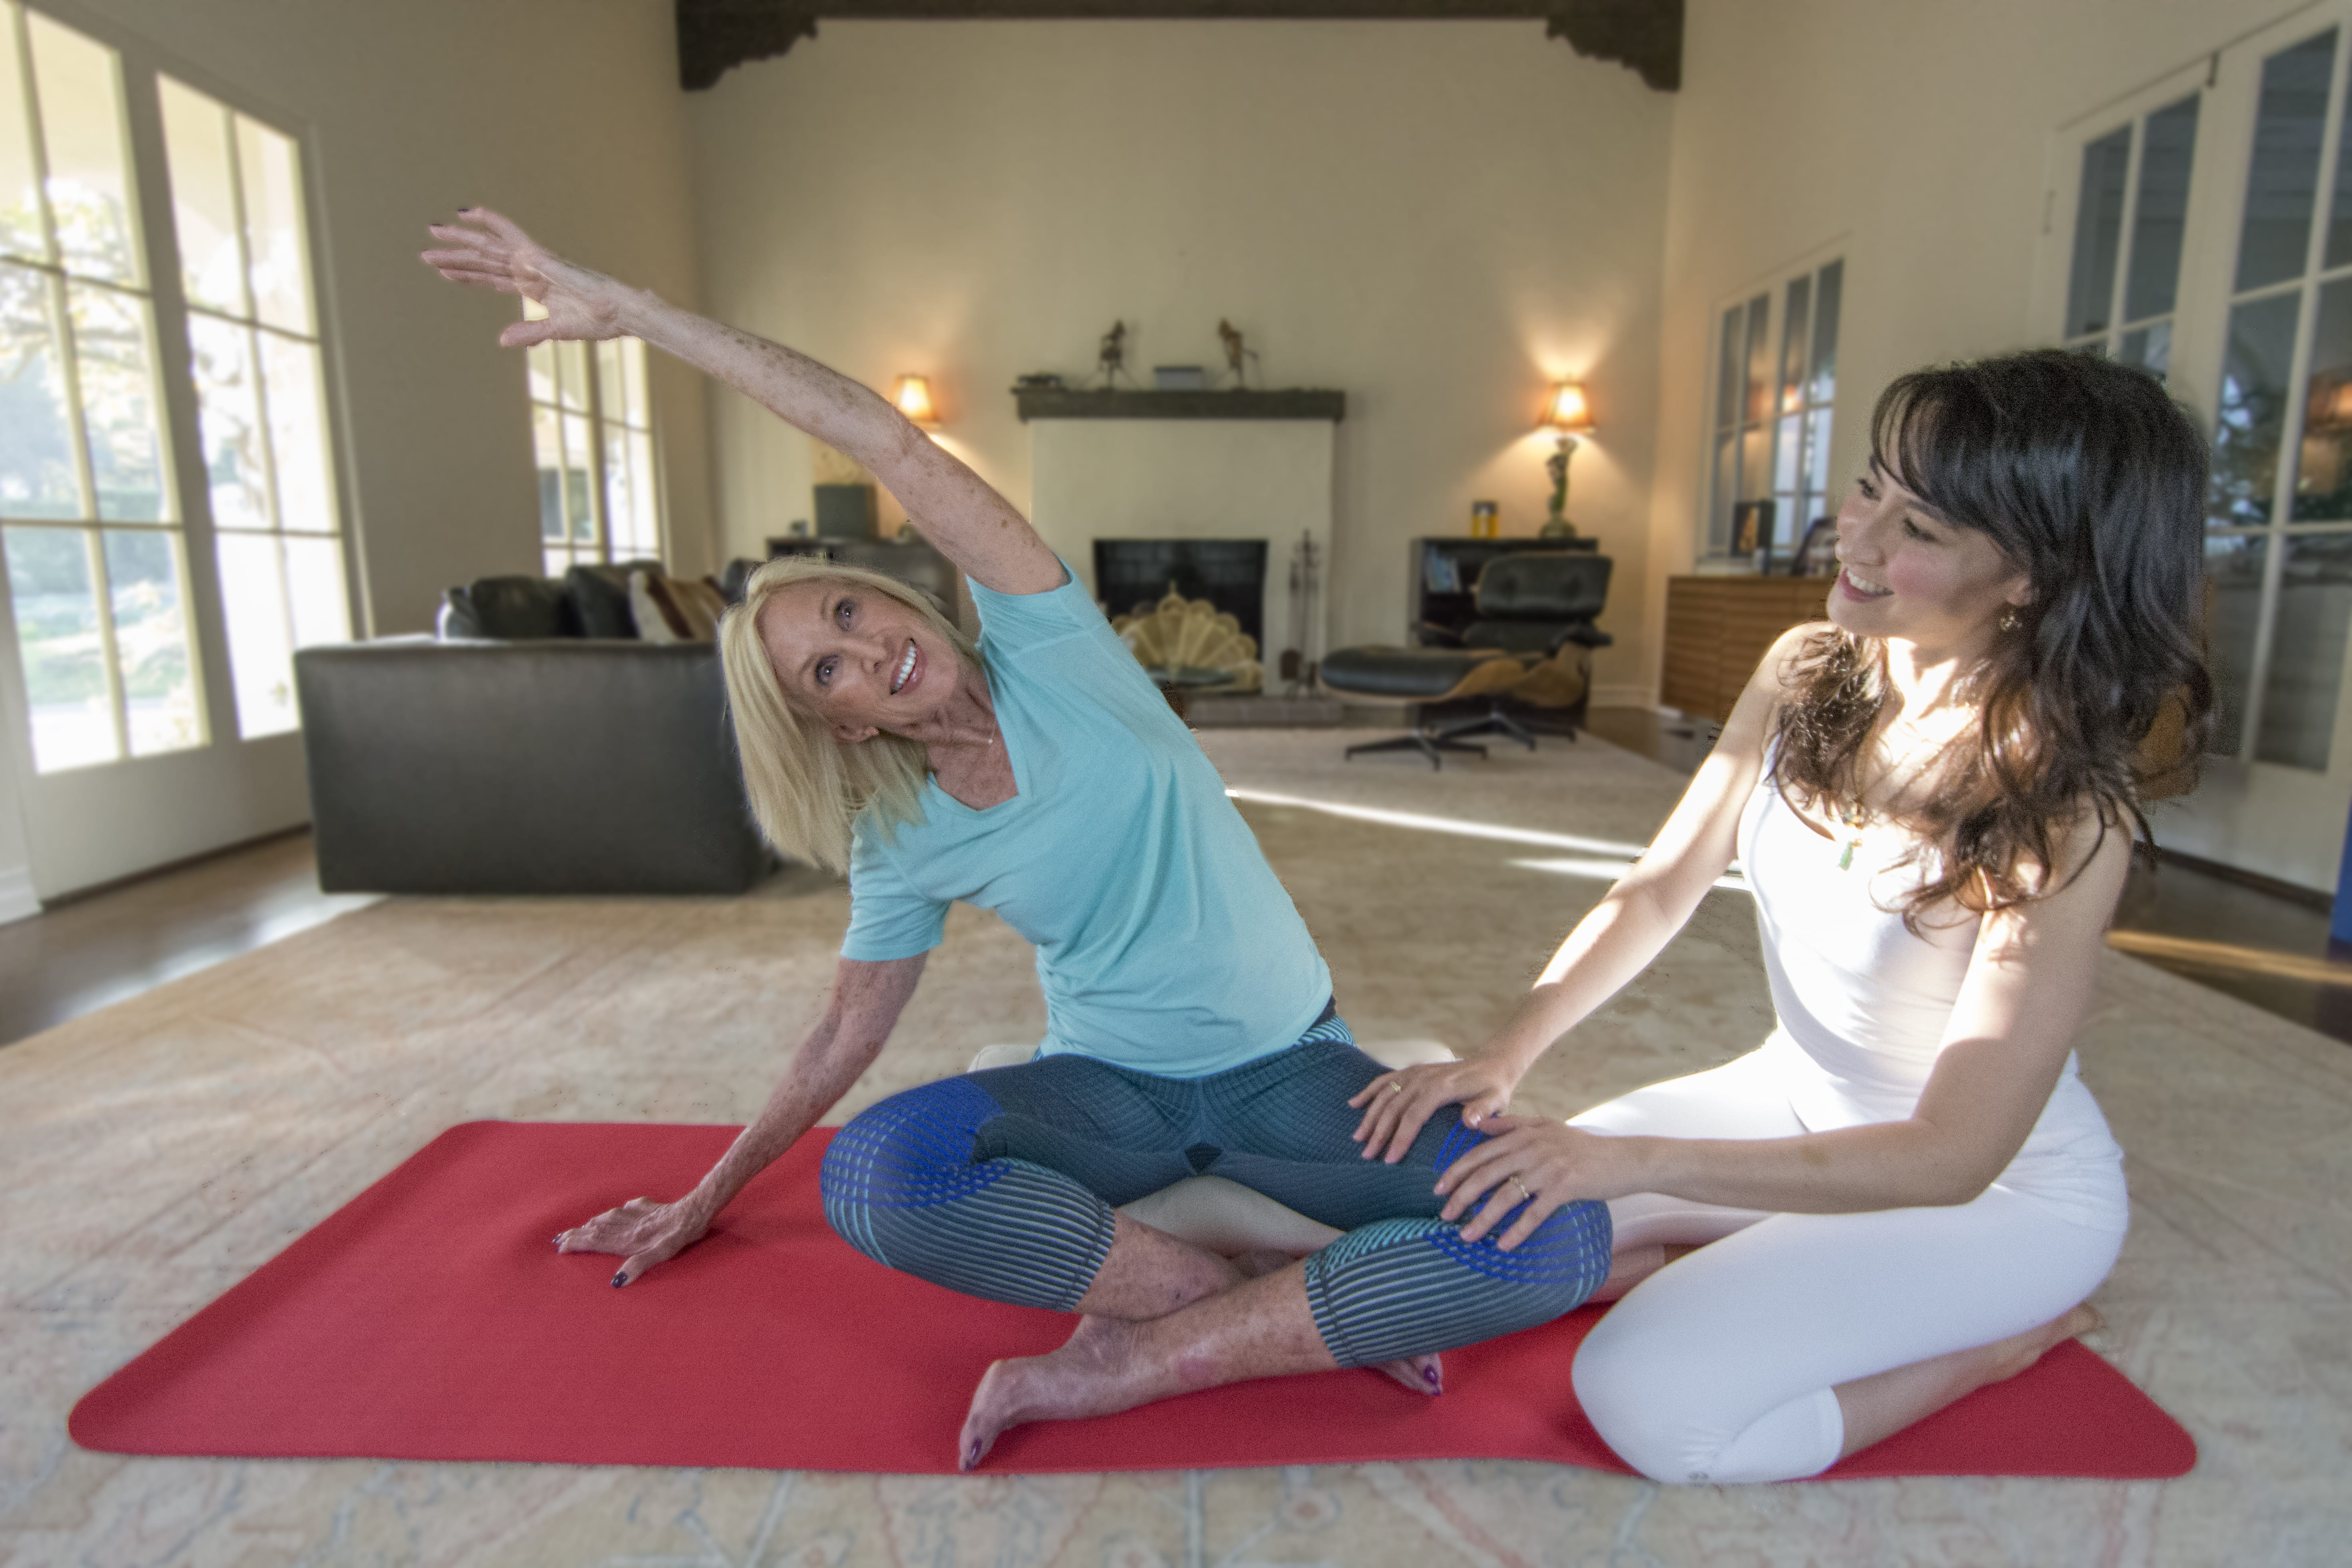 Private Yoga Instructor Santa Monica Los Angeles Brentwood Pacific Palisades Bel Air Venice Marina del Rey The Art of 1:1 Teaching